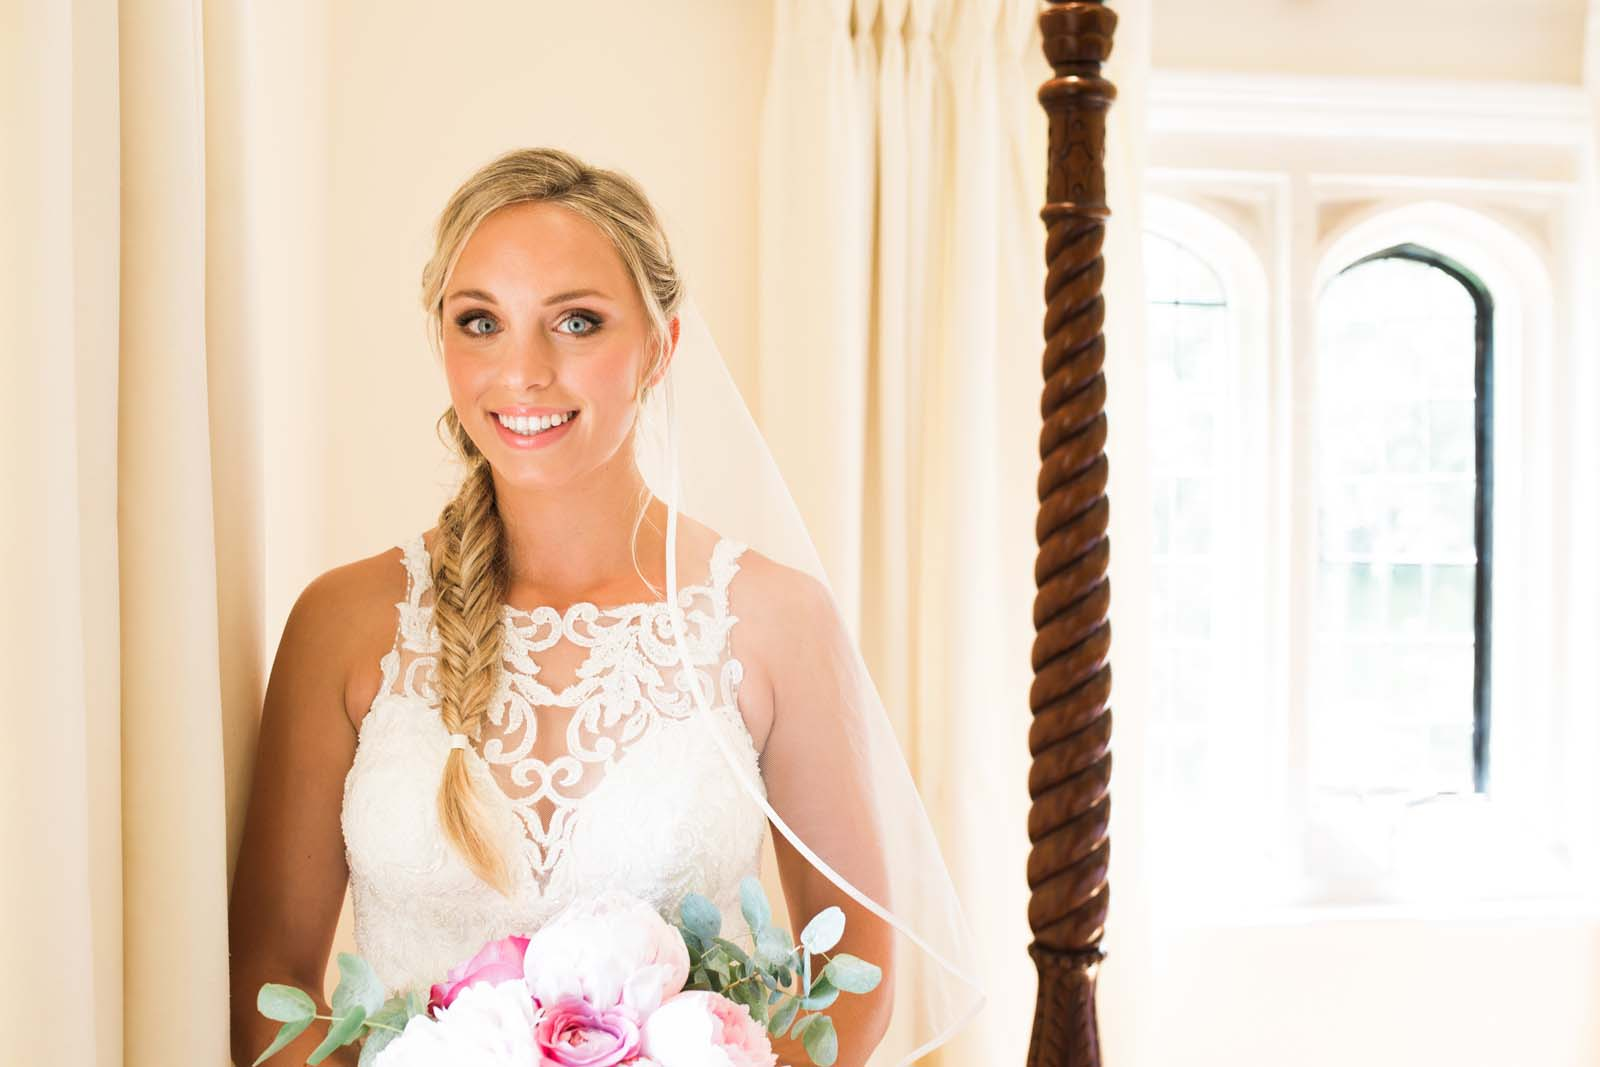 Notley Abbey wedding in Buckinghamshire Bride portrait